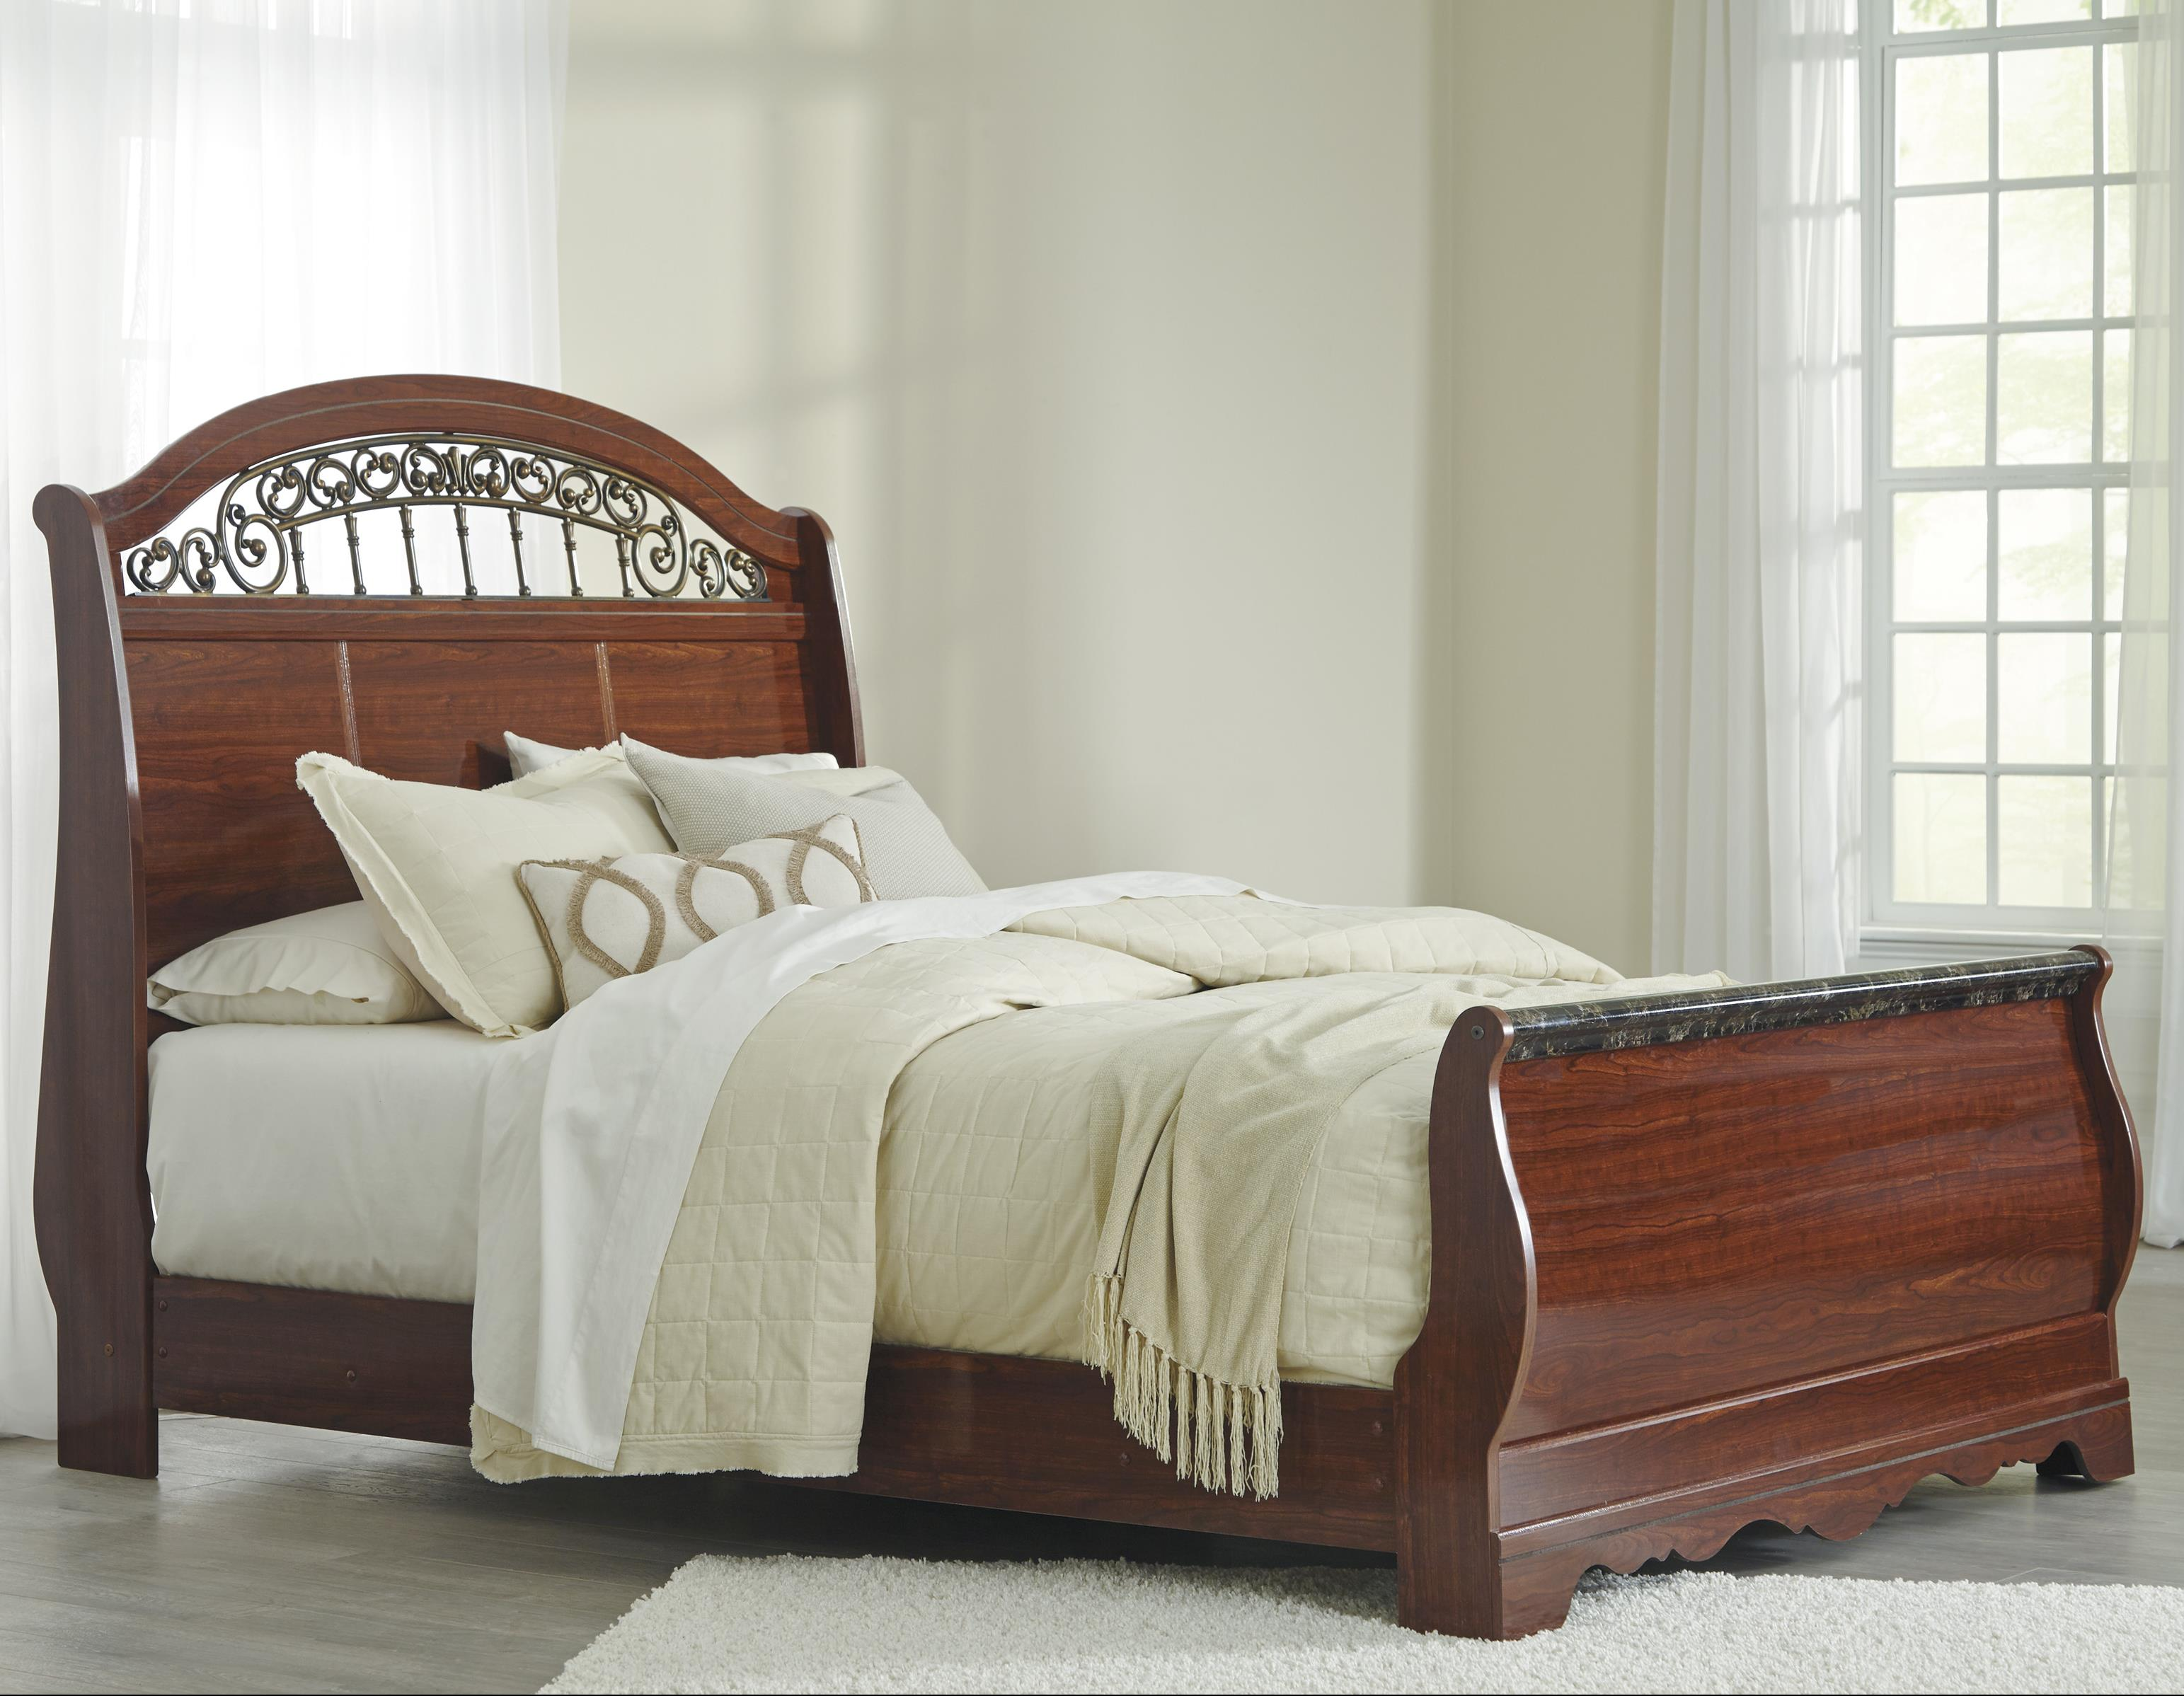 Signature Design by Ashley Fairbrooks Estate Queen Sleigh Bed - Item Number: B105-77+74+96